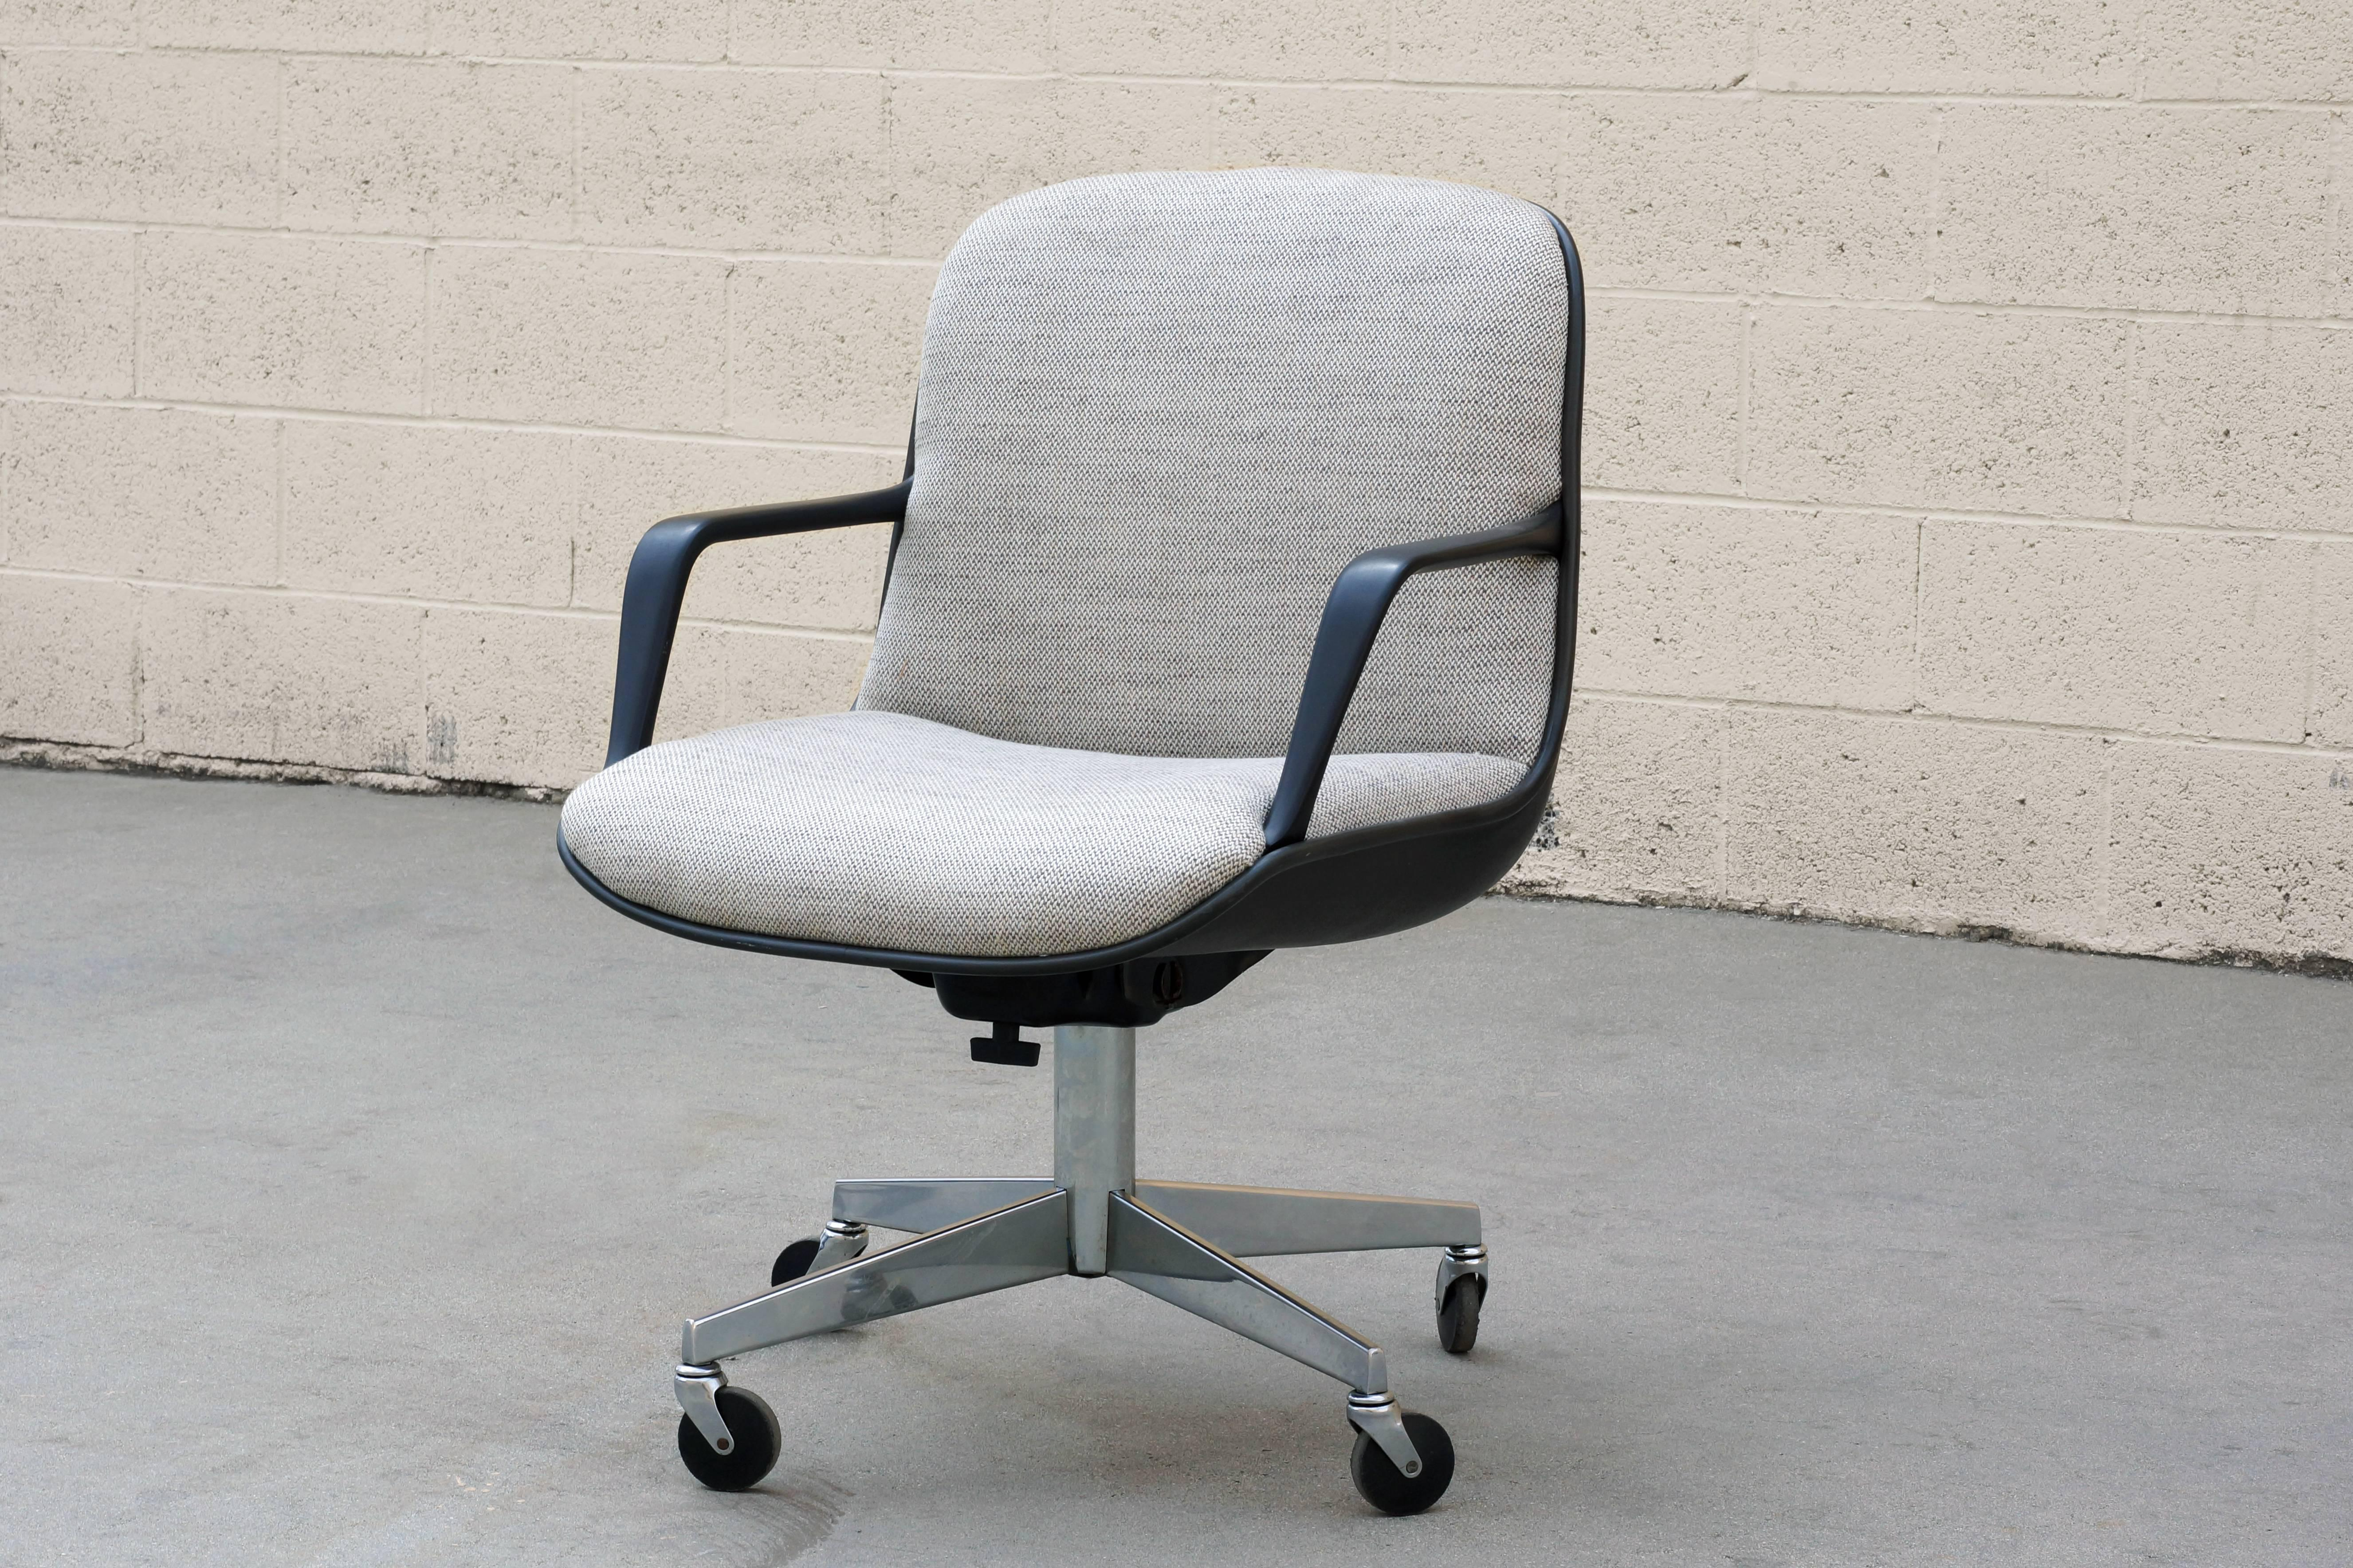 Vintage 1984 Steelcase Office Chair, Model 451. This Midcentury Inspired  Chair Features An Iconic